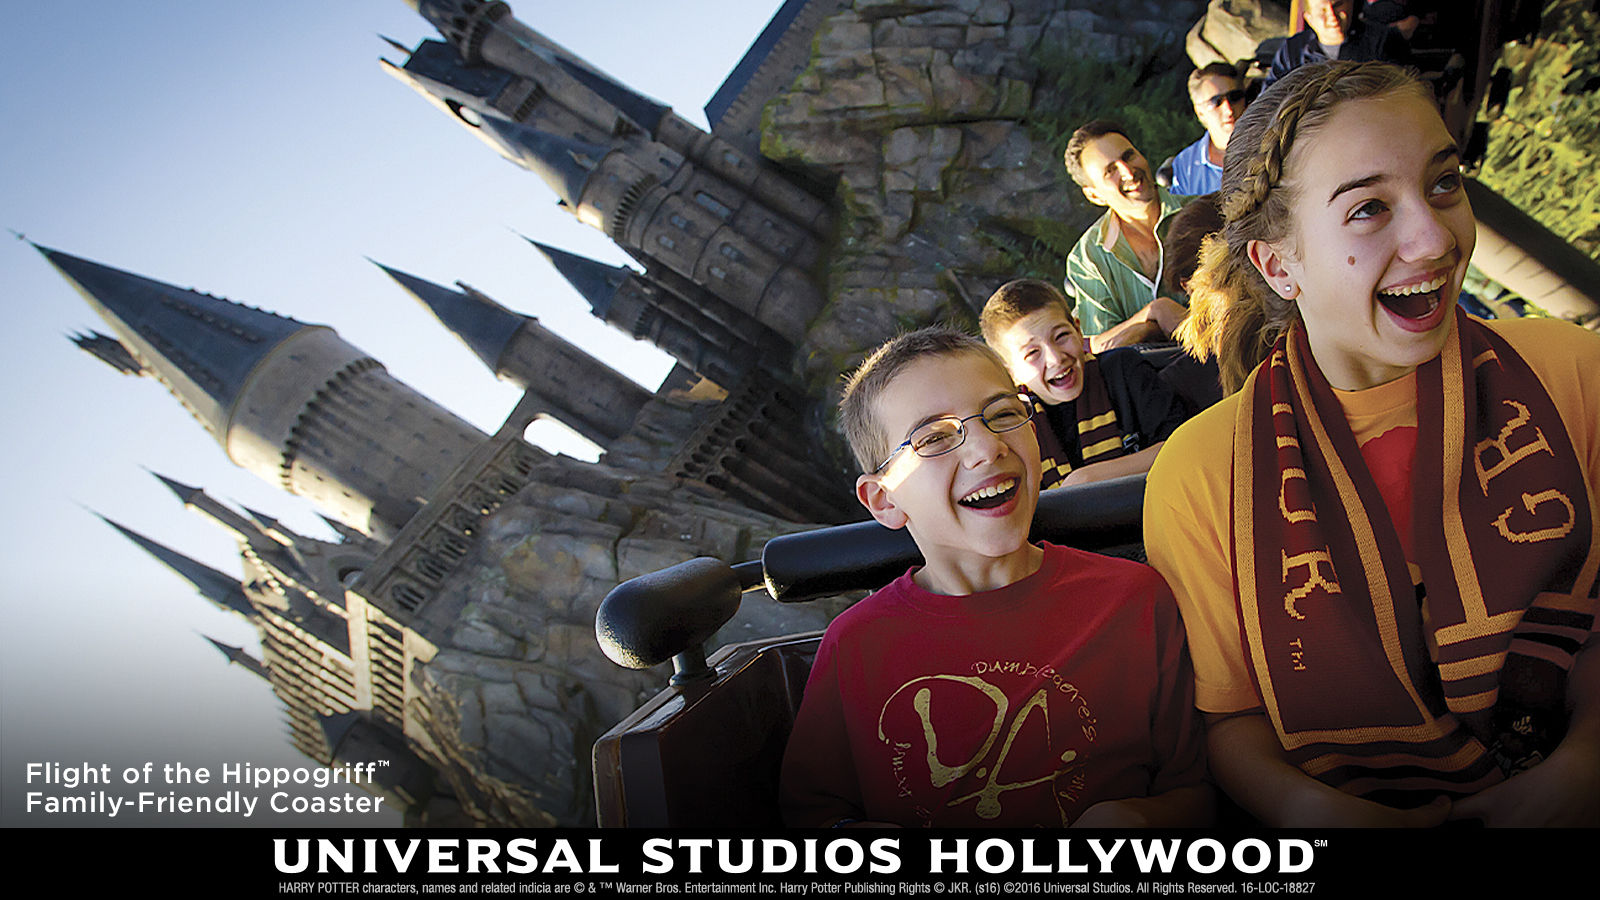 Universal Studios Hollywood Hotels - Wizarding World of Harry Potter